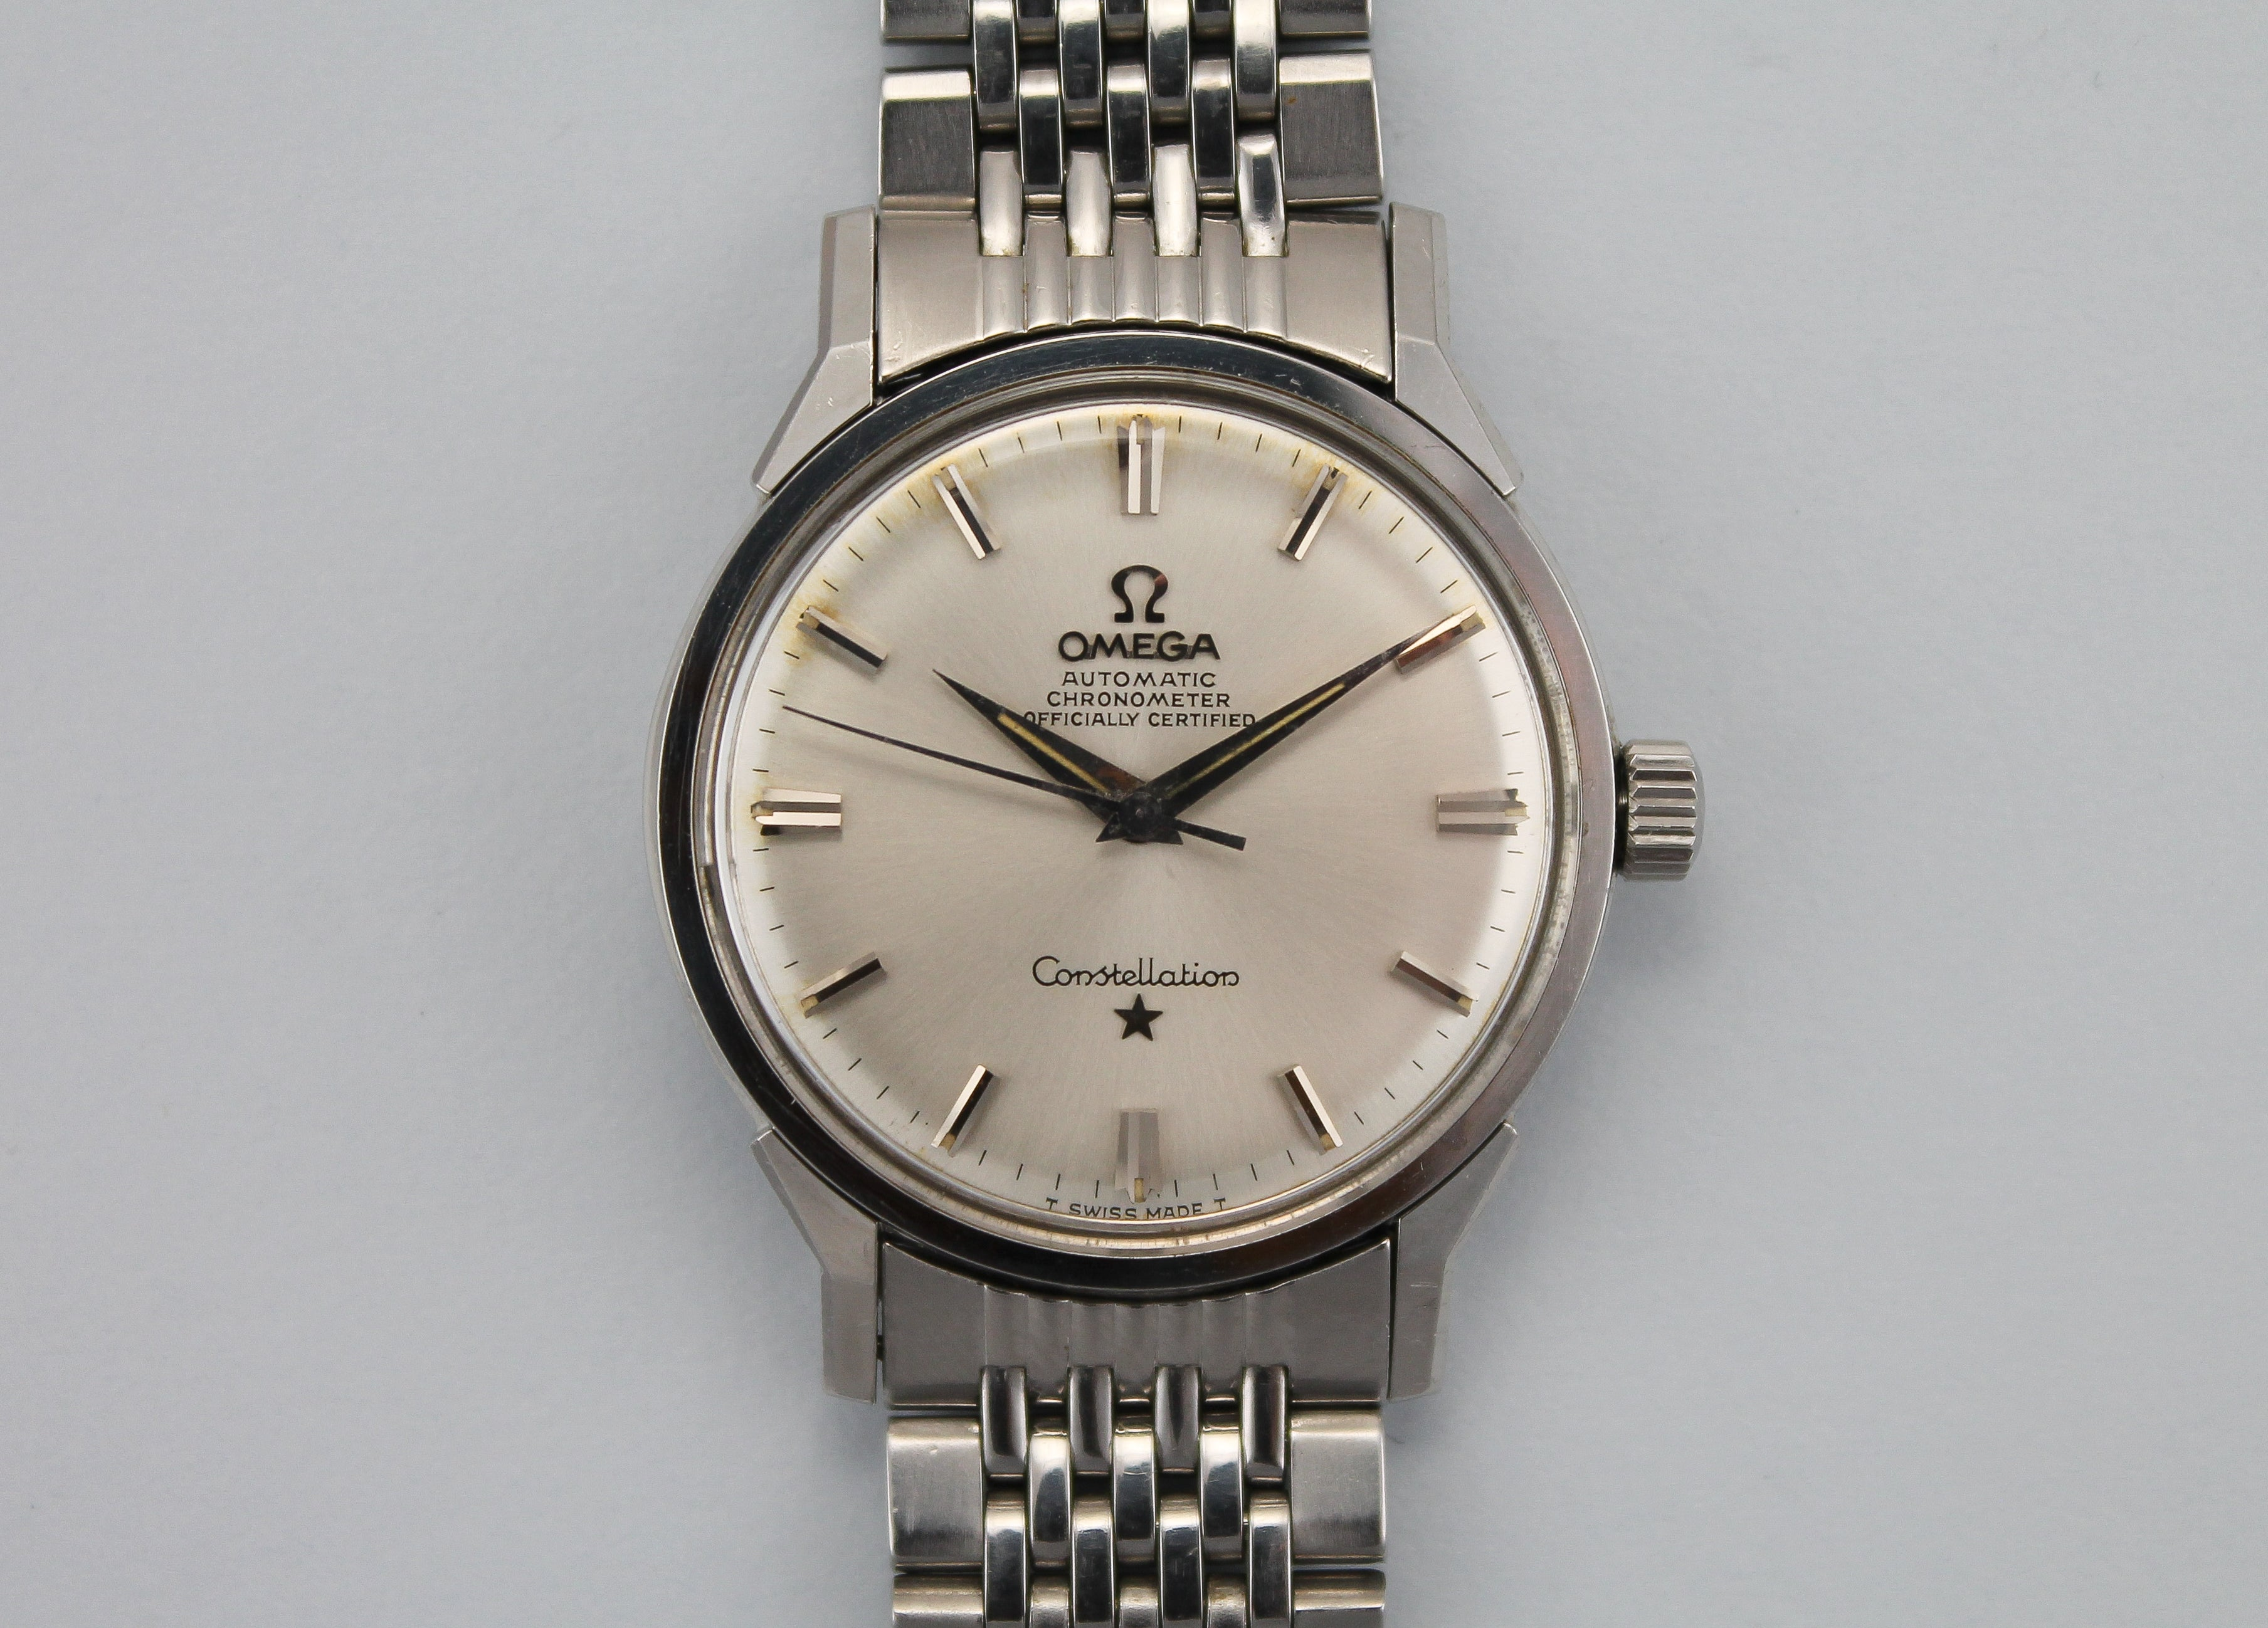 OMEGA Constellation Automatic ref 167.005 Cal 551 (1966)